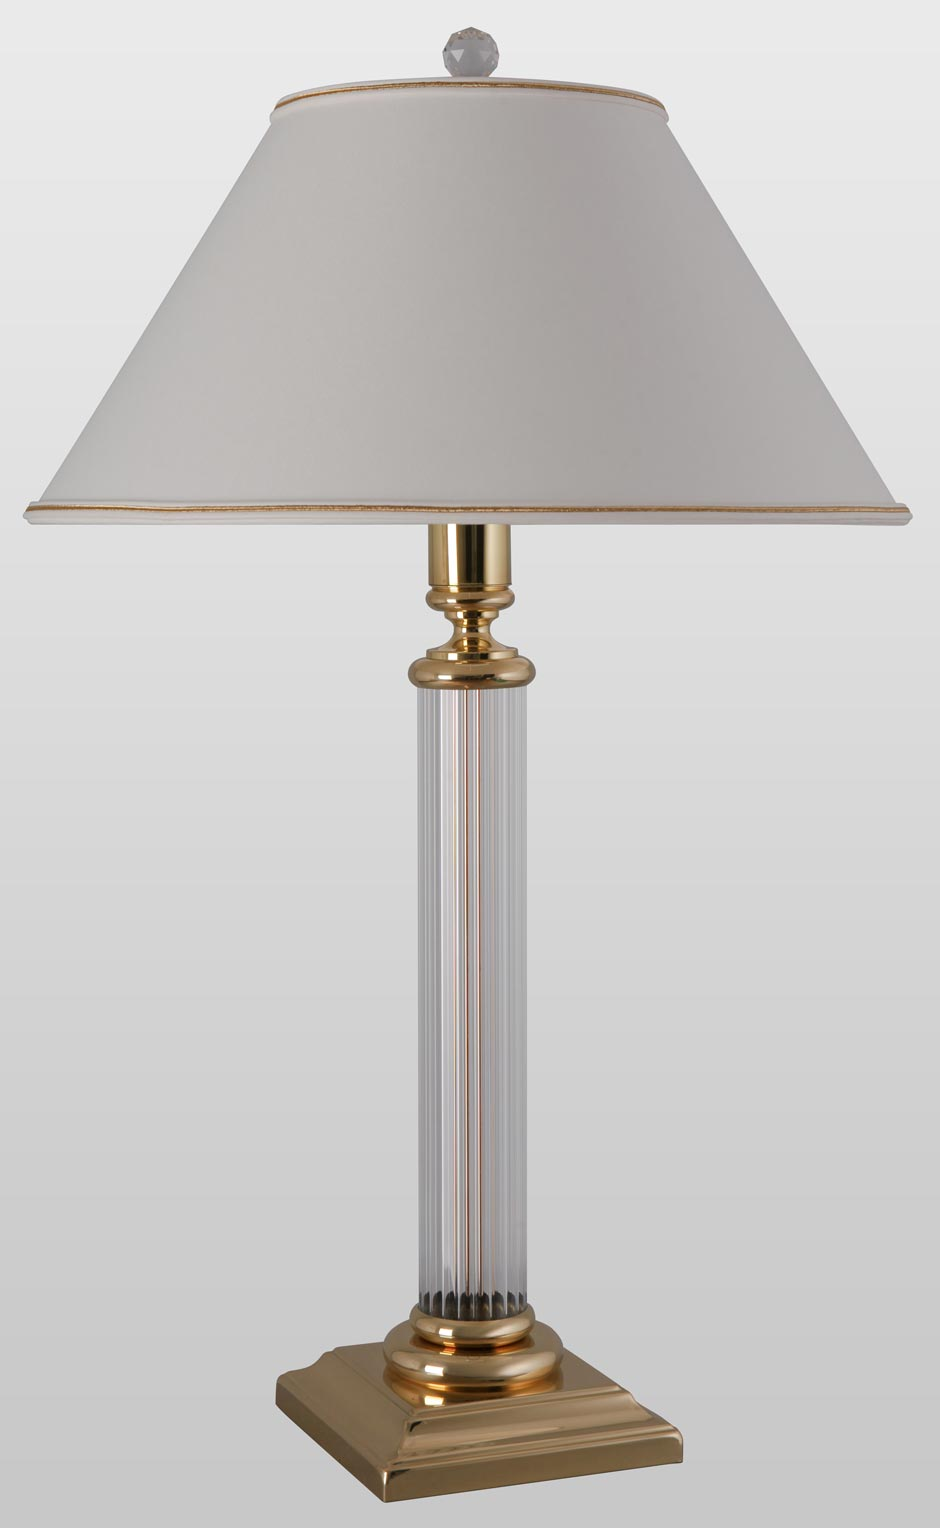 Lubigny lampe de table. Le Dauphin.